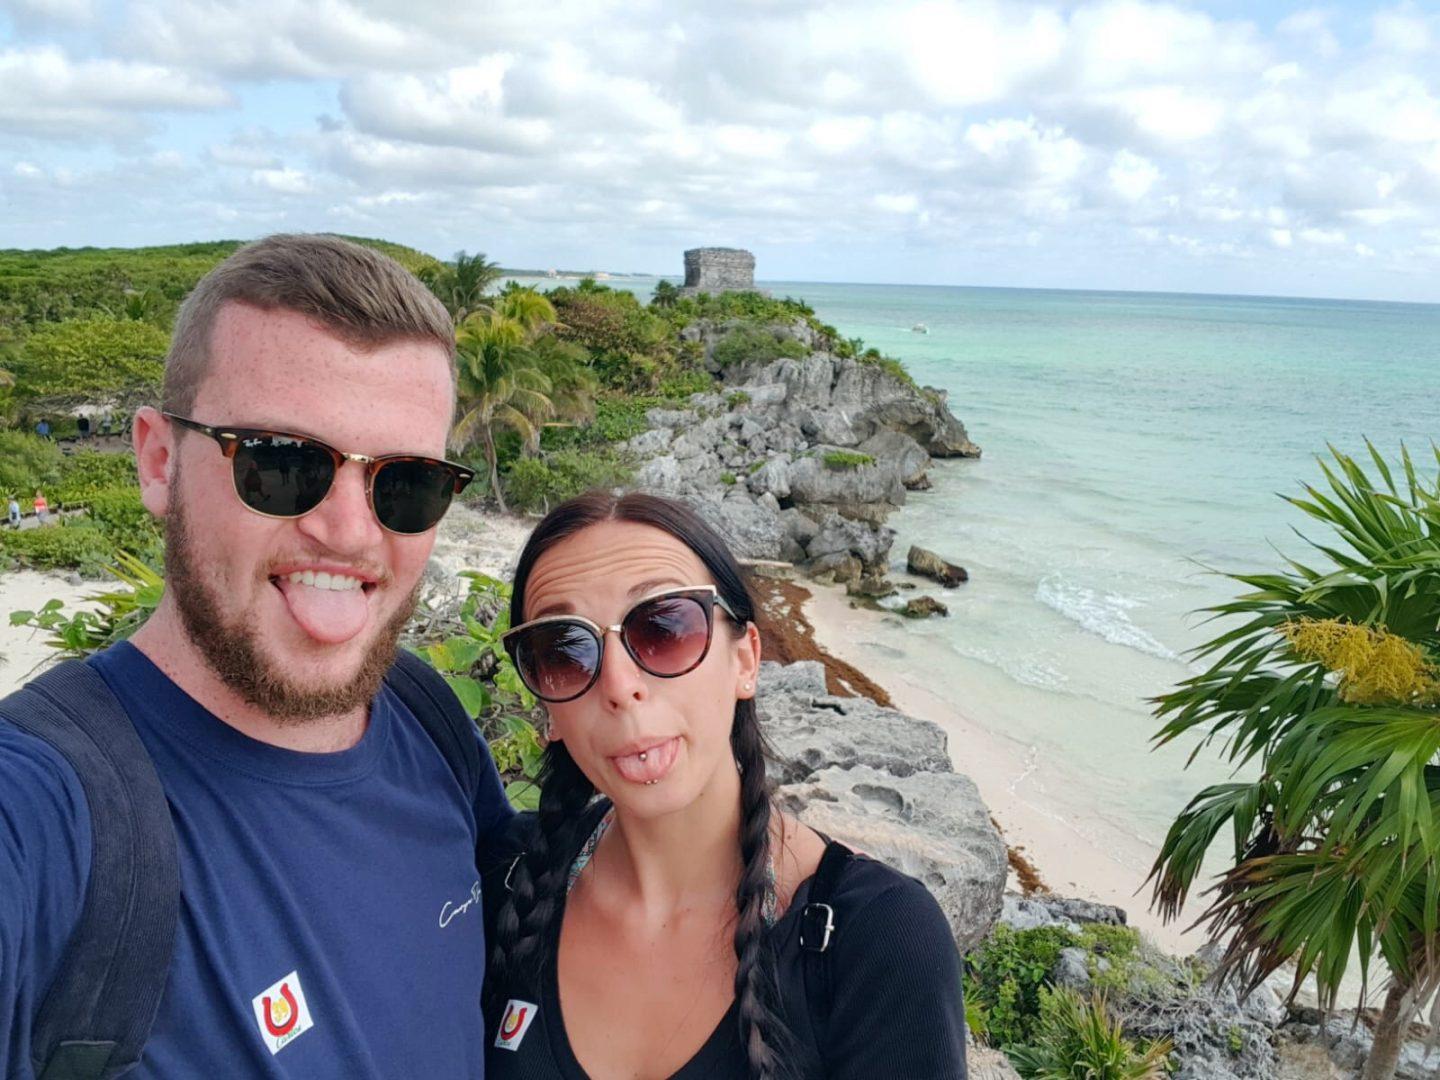 Our engagement story & trip to Mexico!